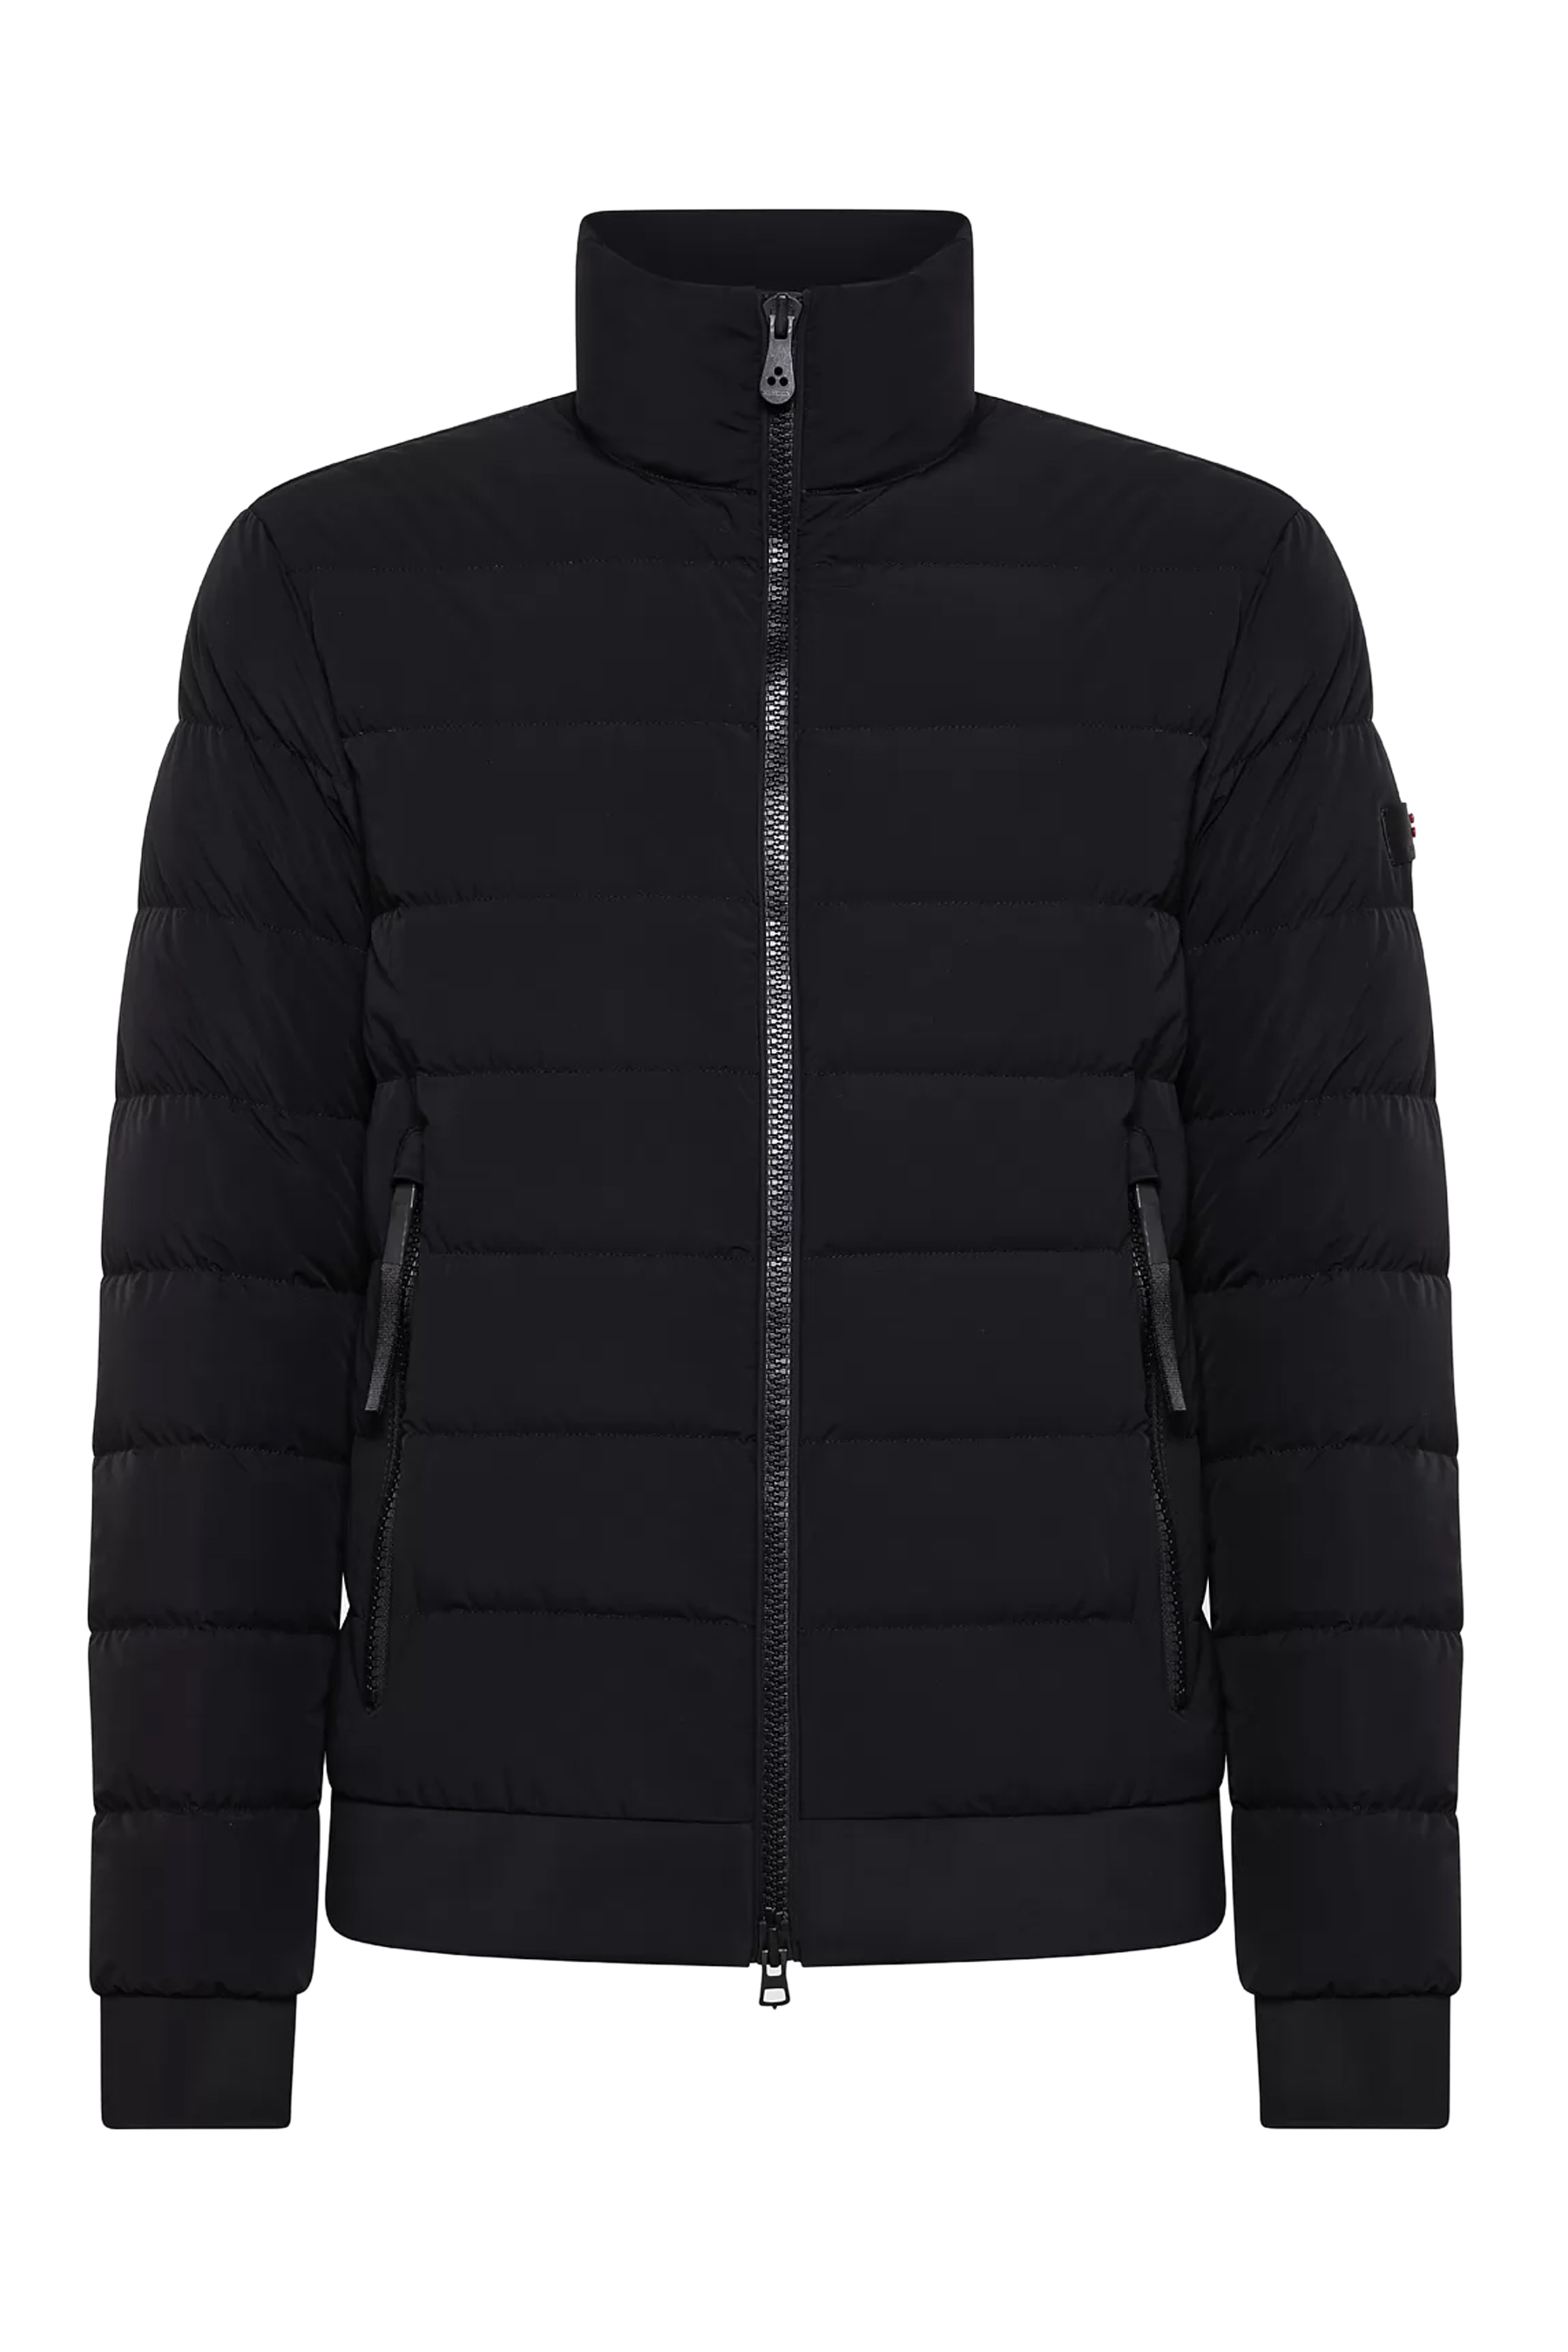 NYLON AND JERSEY DOWN JACKET PEUTEREY | Jackets | ZULU AG 03NER